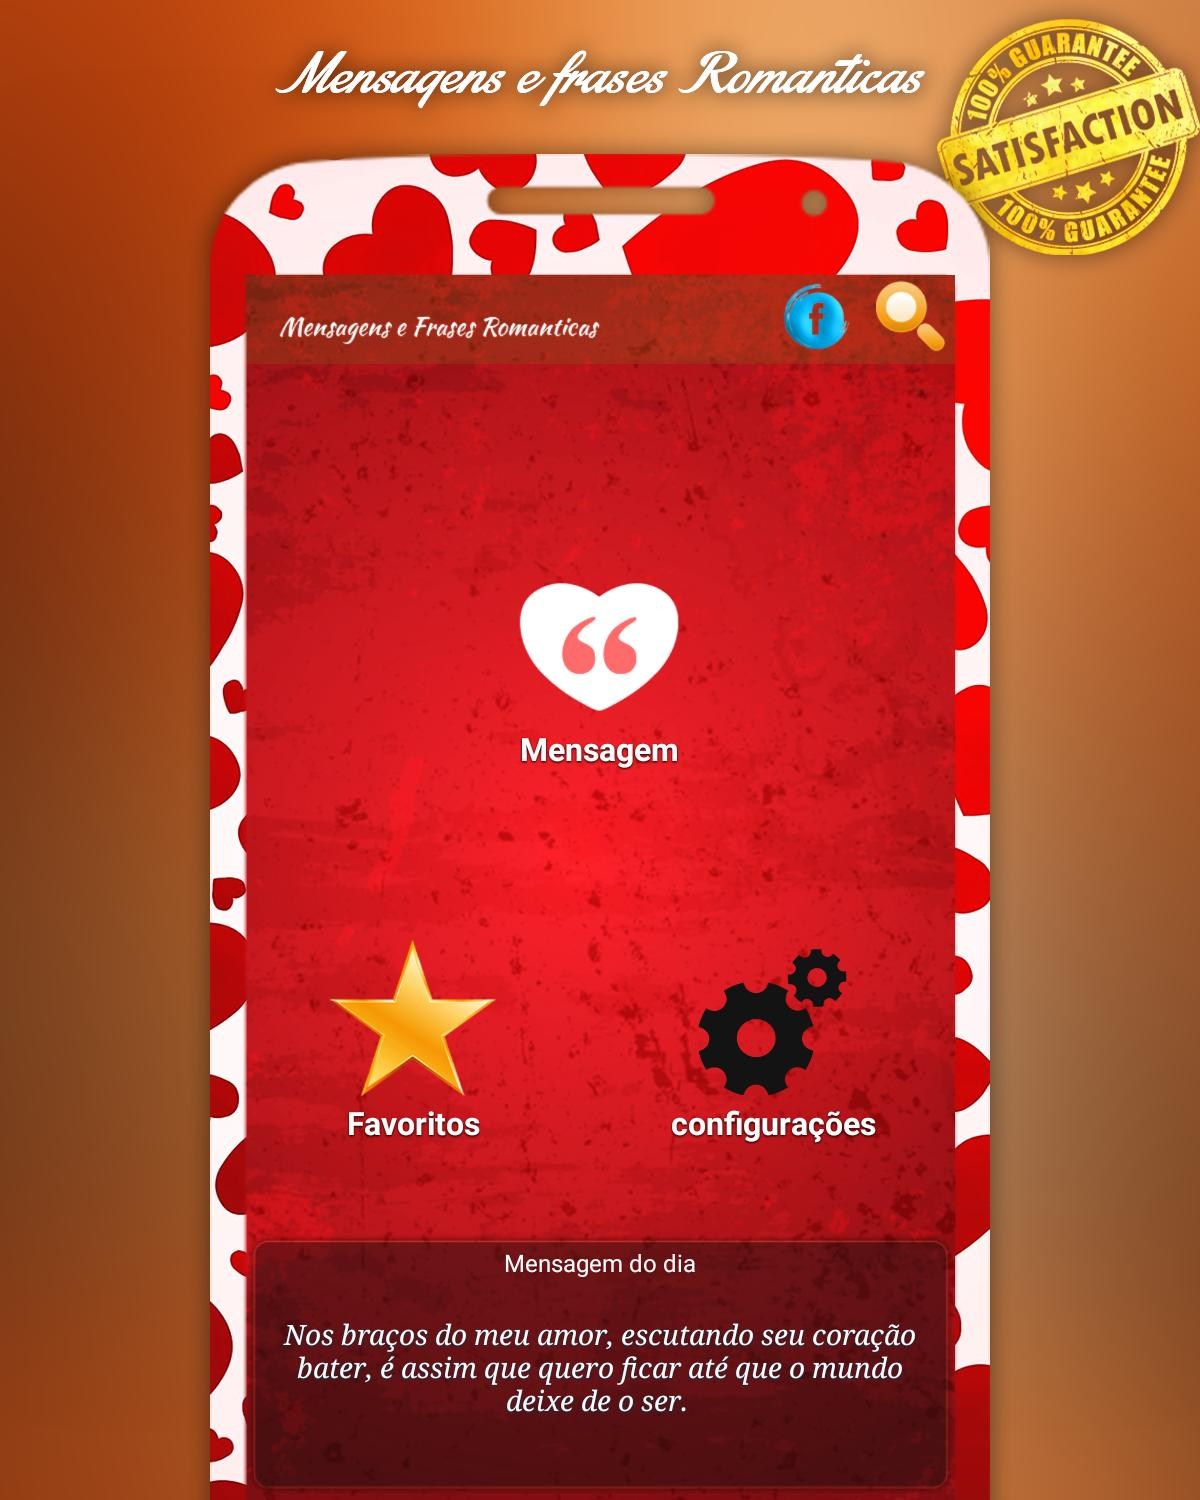 Mensagens E Frases Romanticas For Android Apk Download